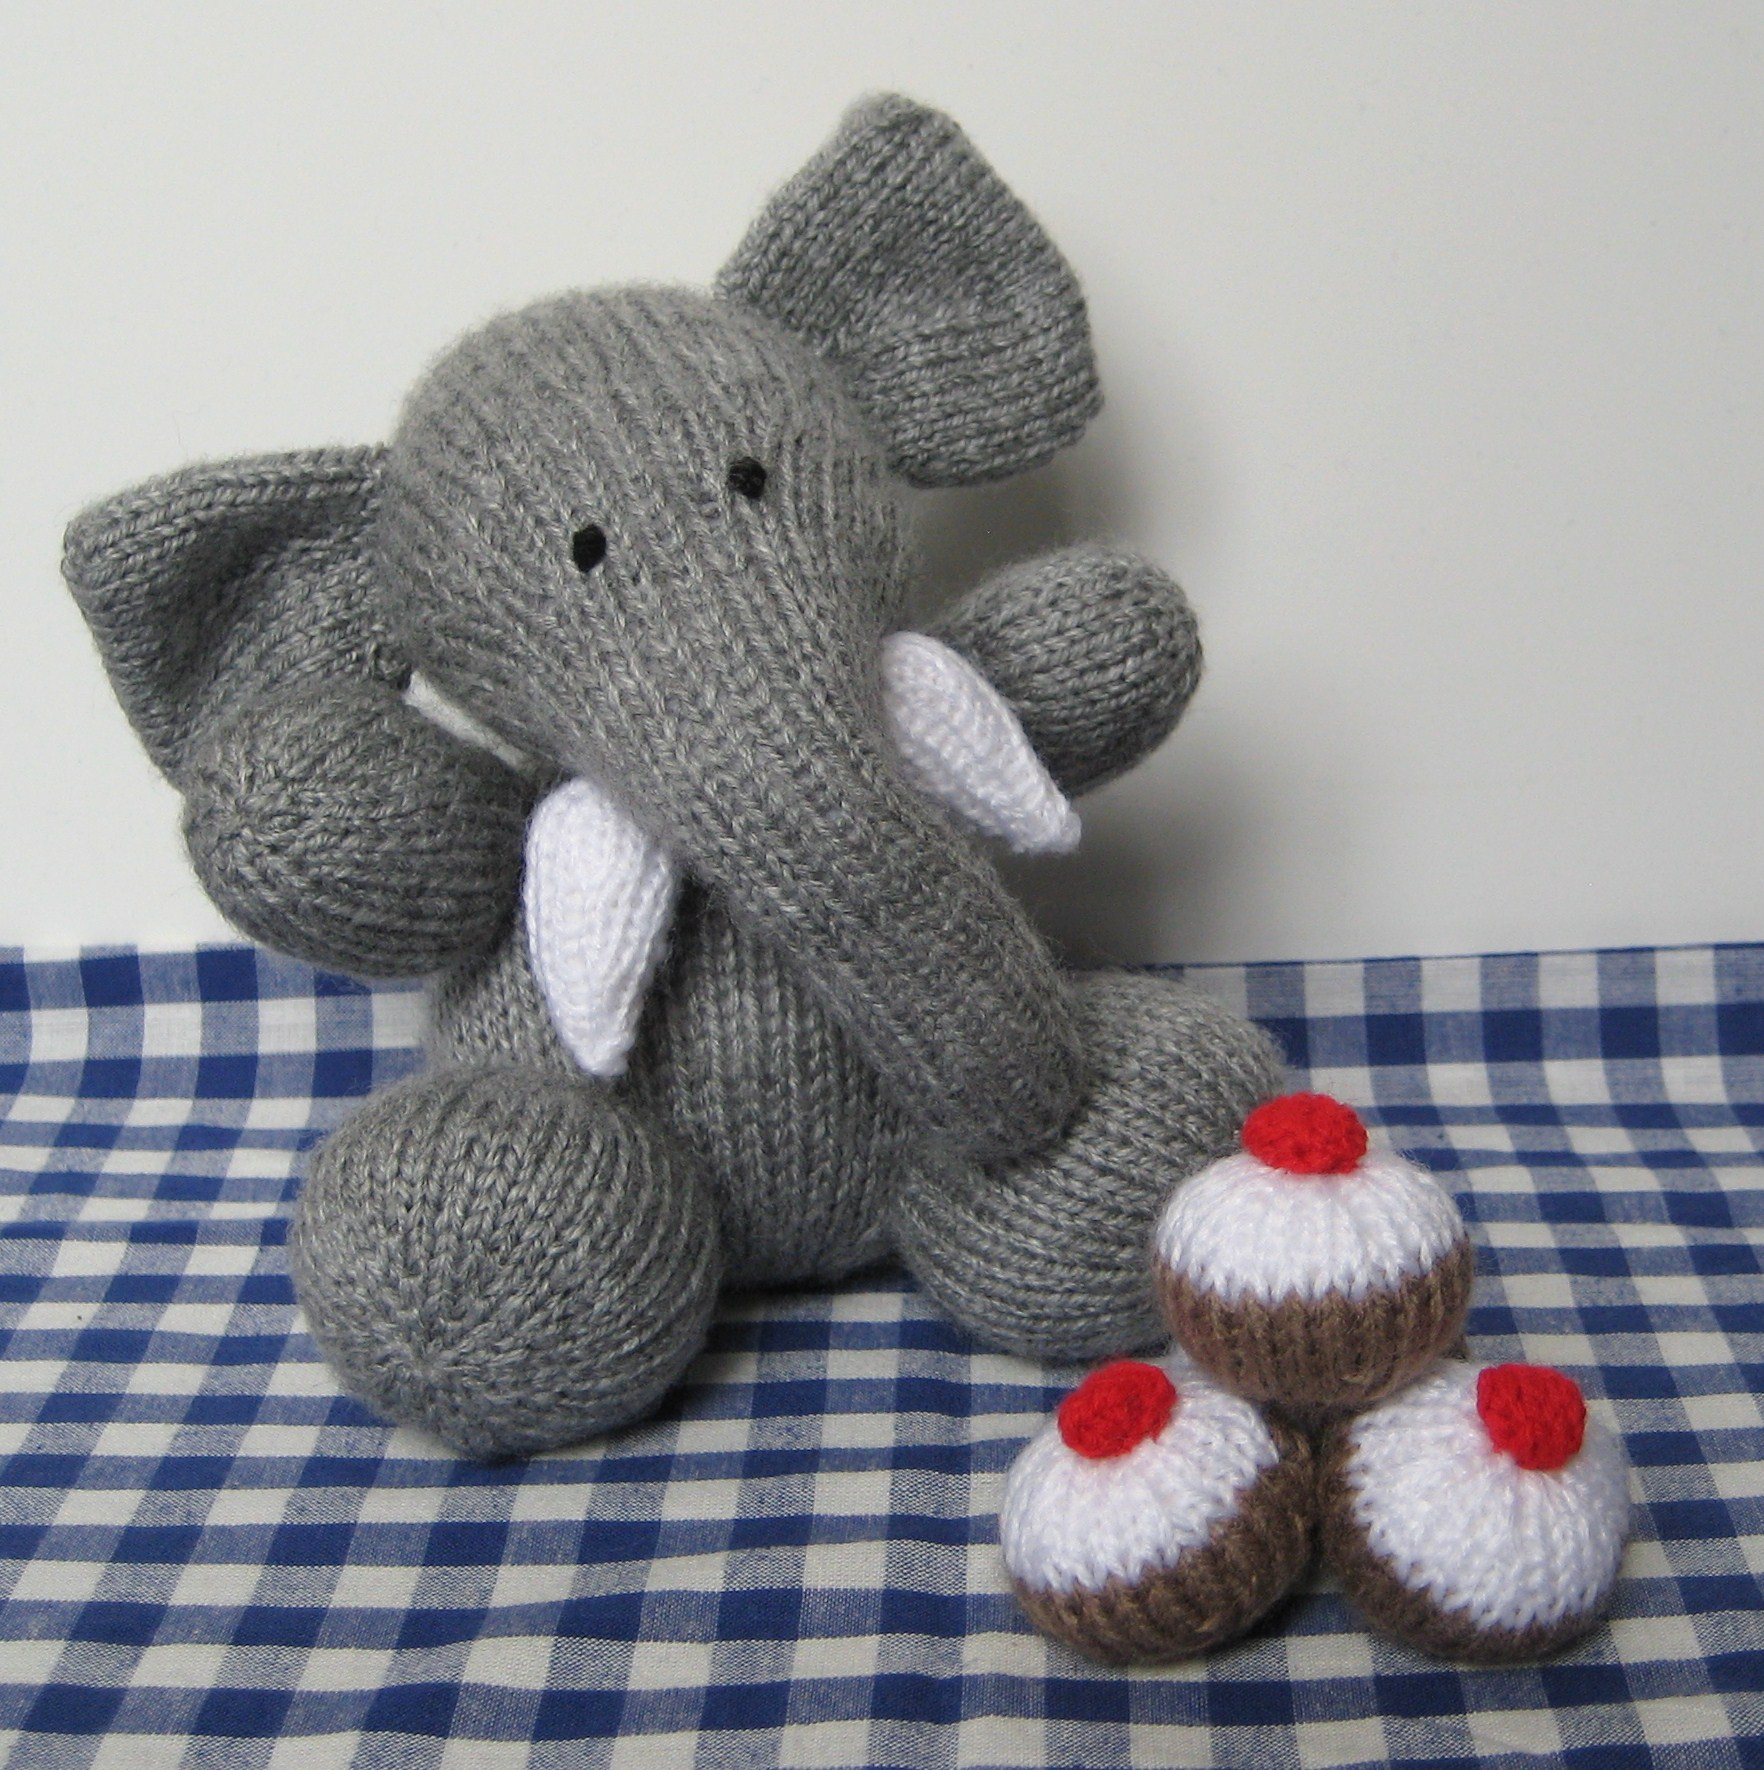 Bloomsbury elephant knitting pattern